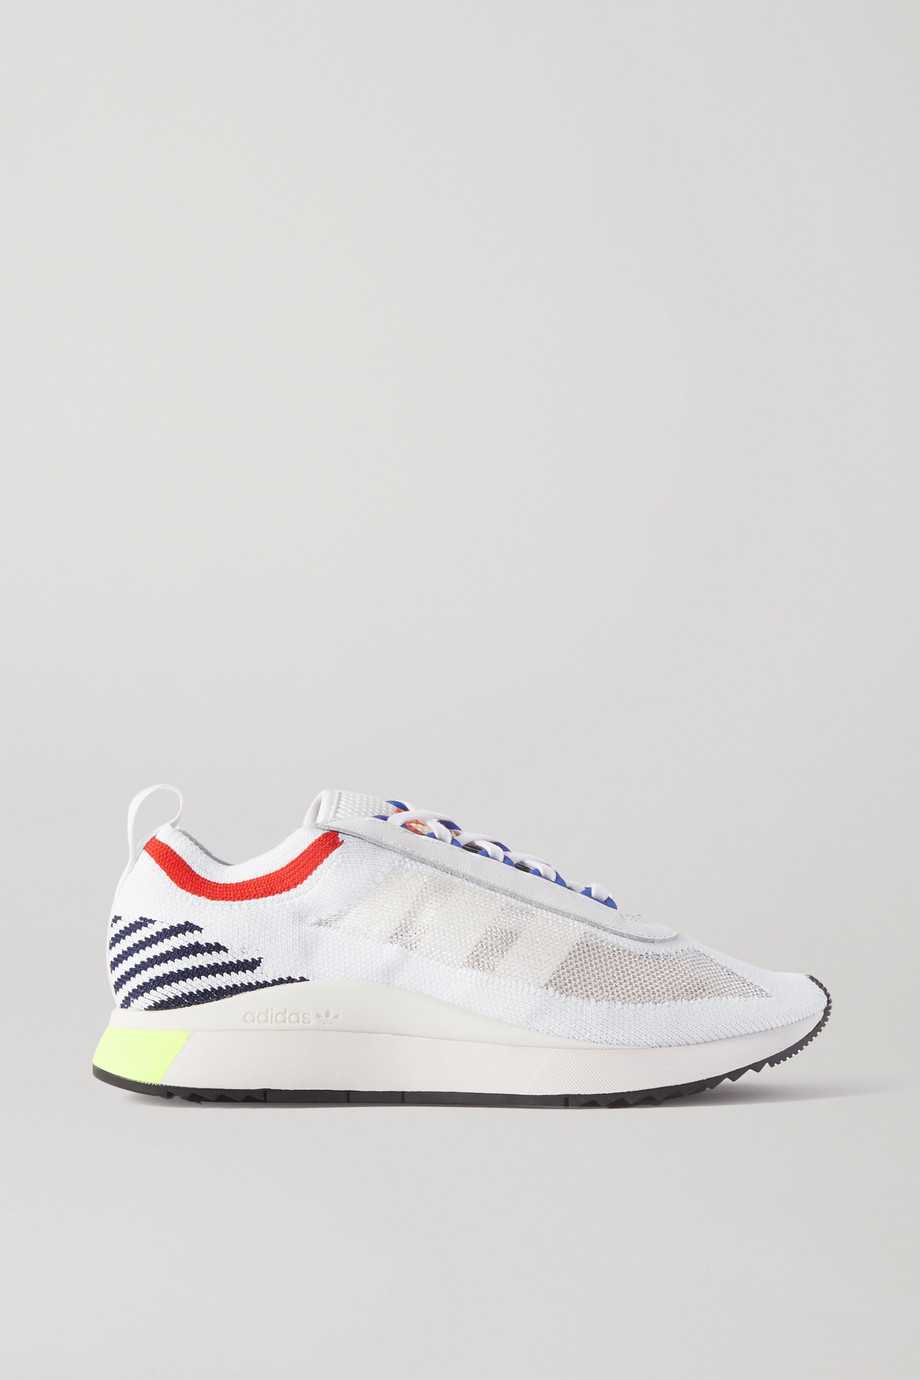 adidas Originals SL Andridge leather-trimmed Primeknit sneakers